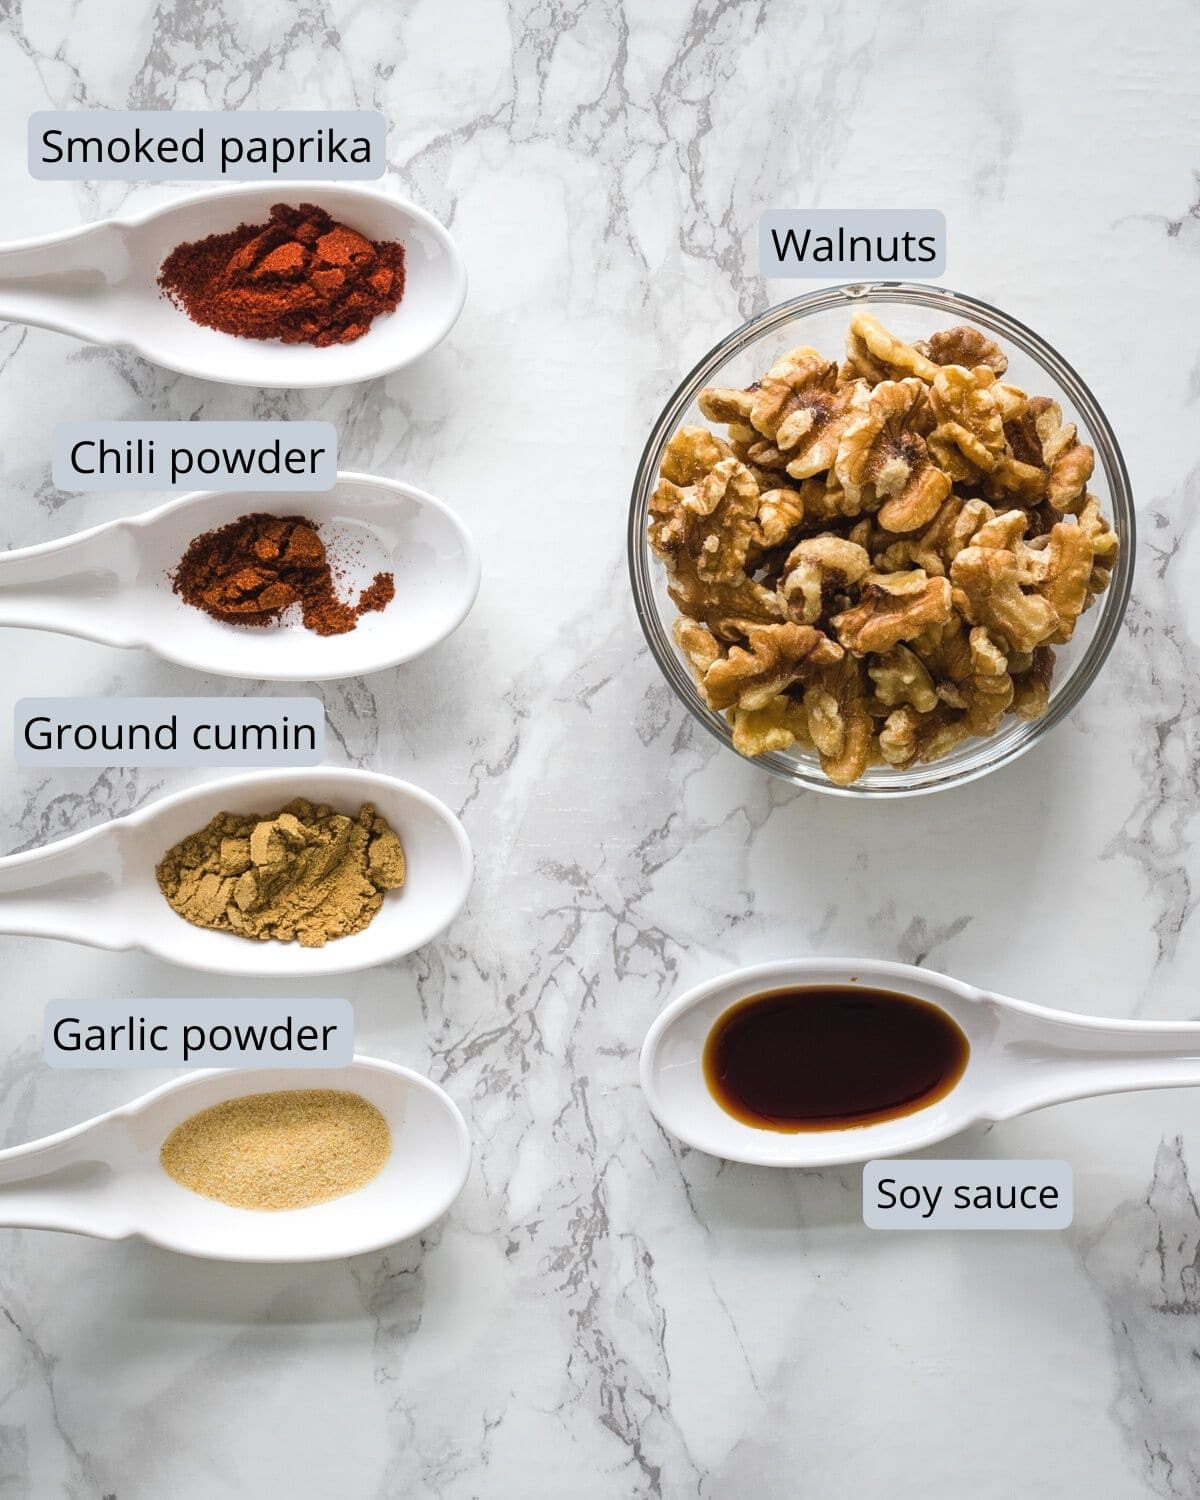 Ingredients used in making walnut meat are removed in individual bowl and spoons.